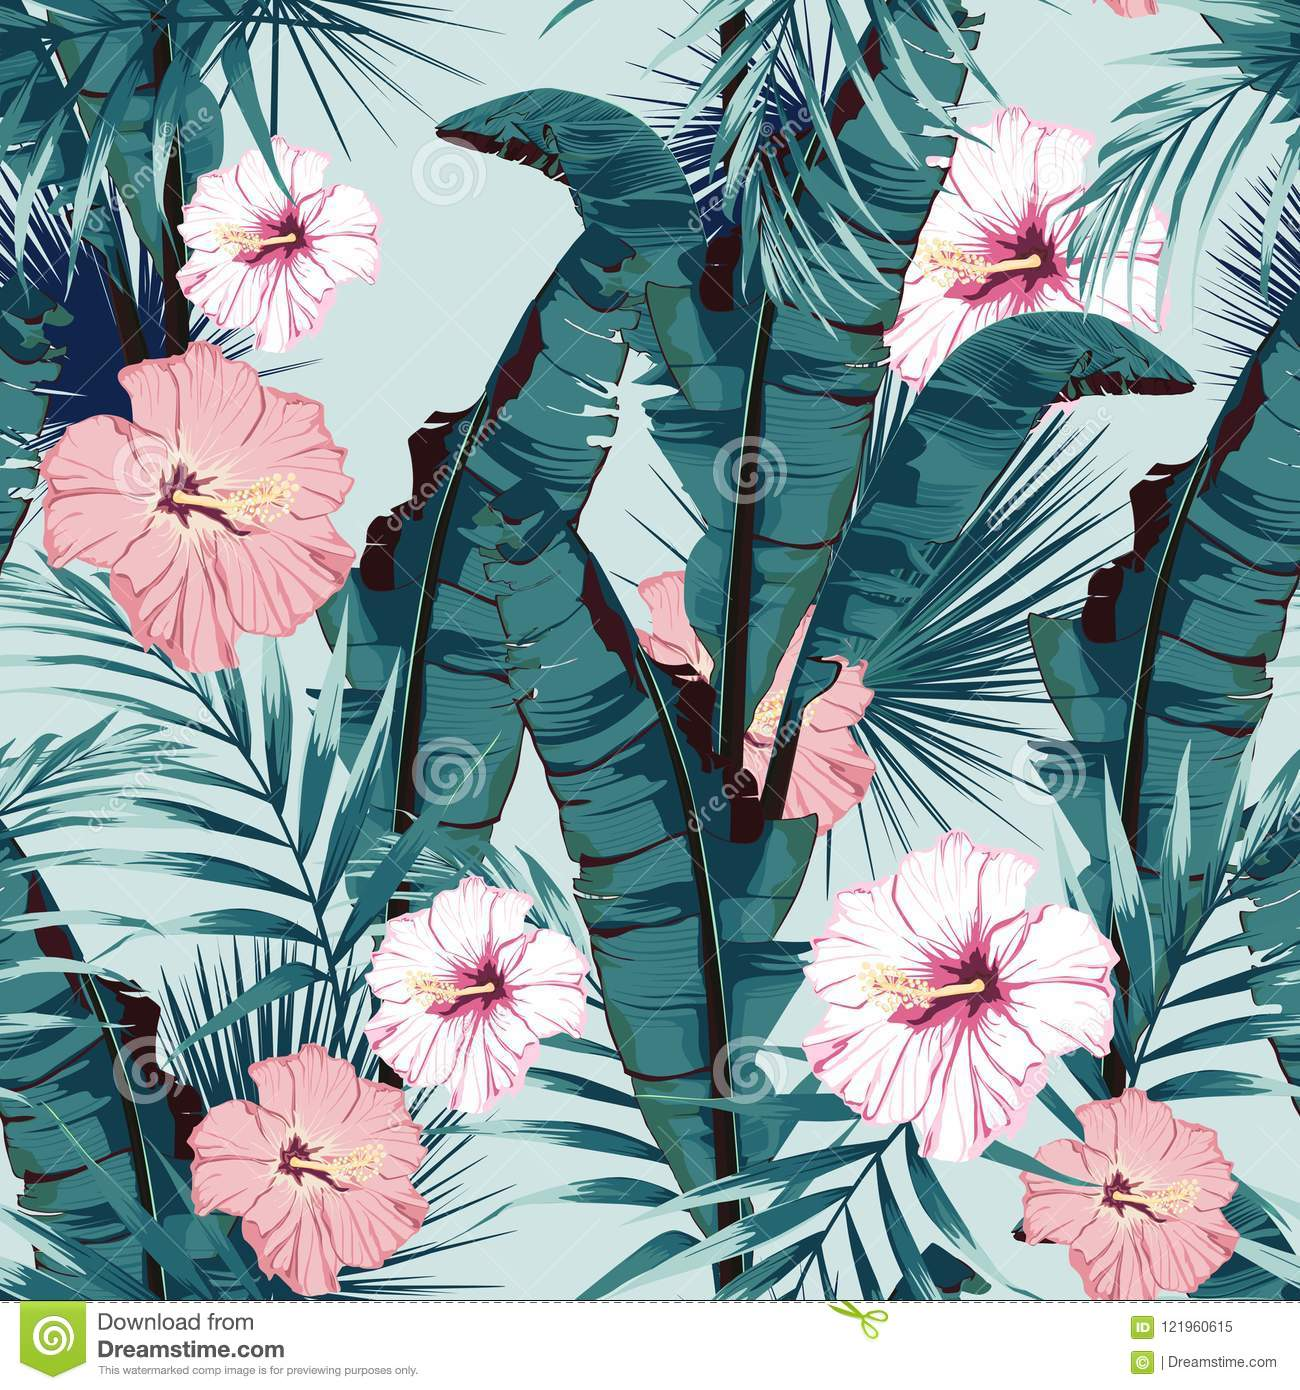 Tropic summer painting seamless vector pattern with palm banana leaf and plants. Floral jungle hibiscus paradise flowers.